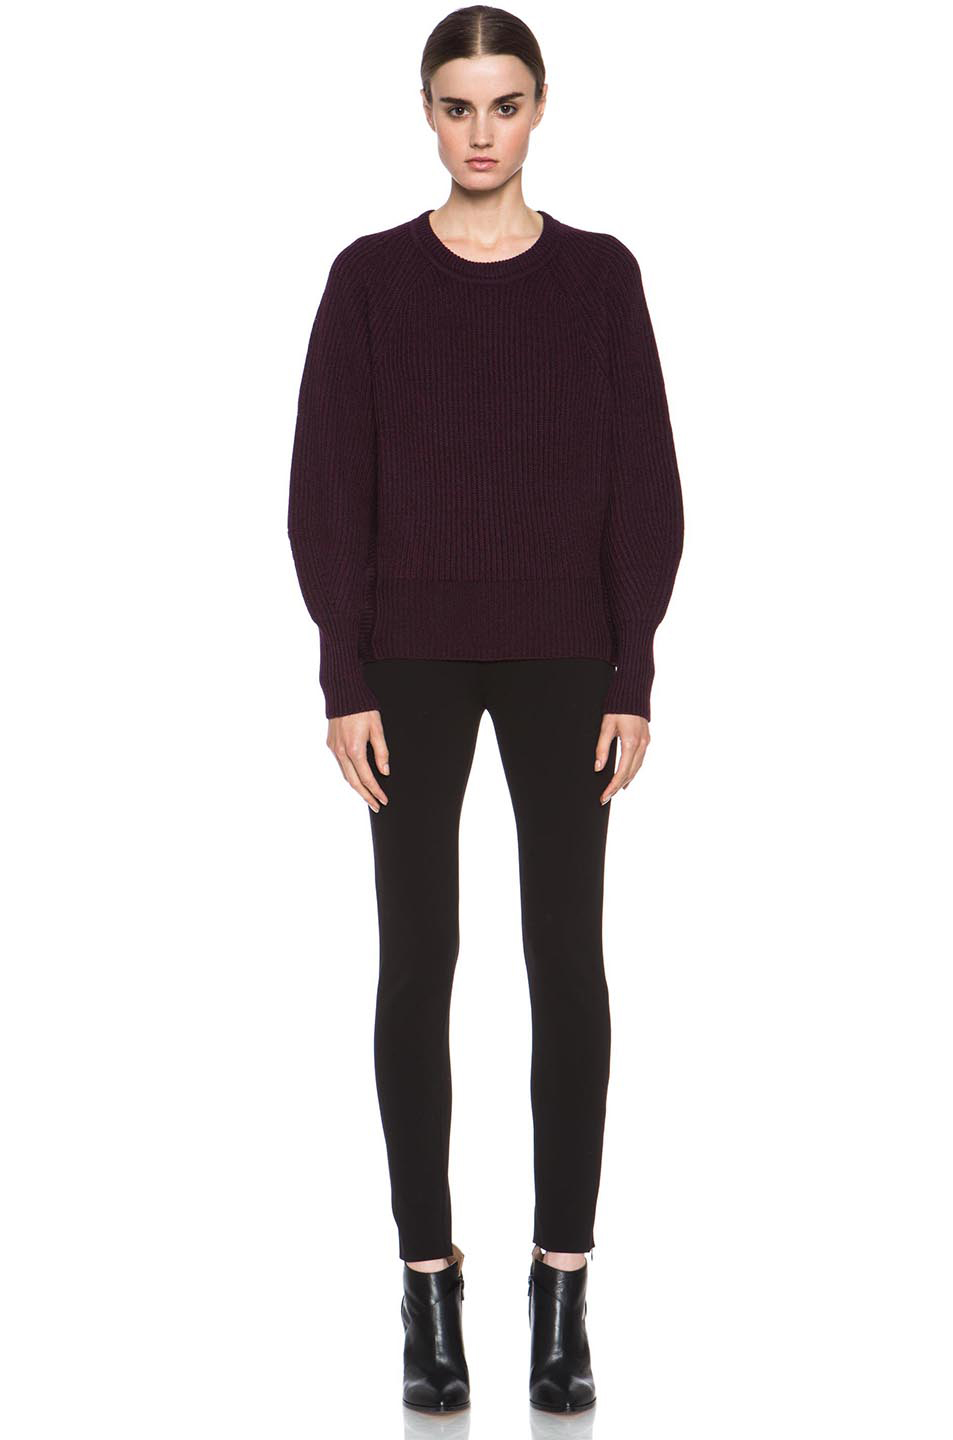 Isabel Marant Etoile|Barett Sweater in Burgundy